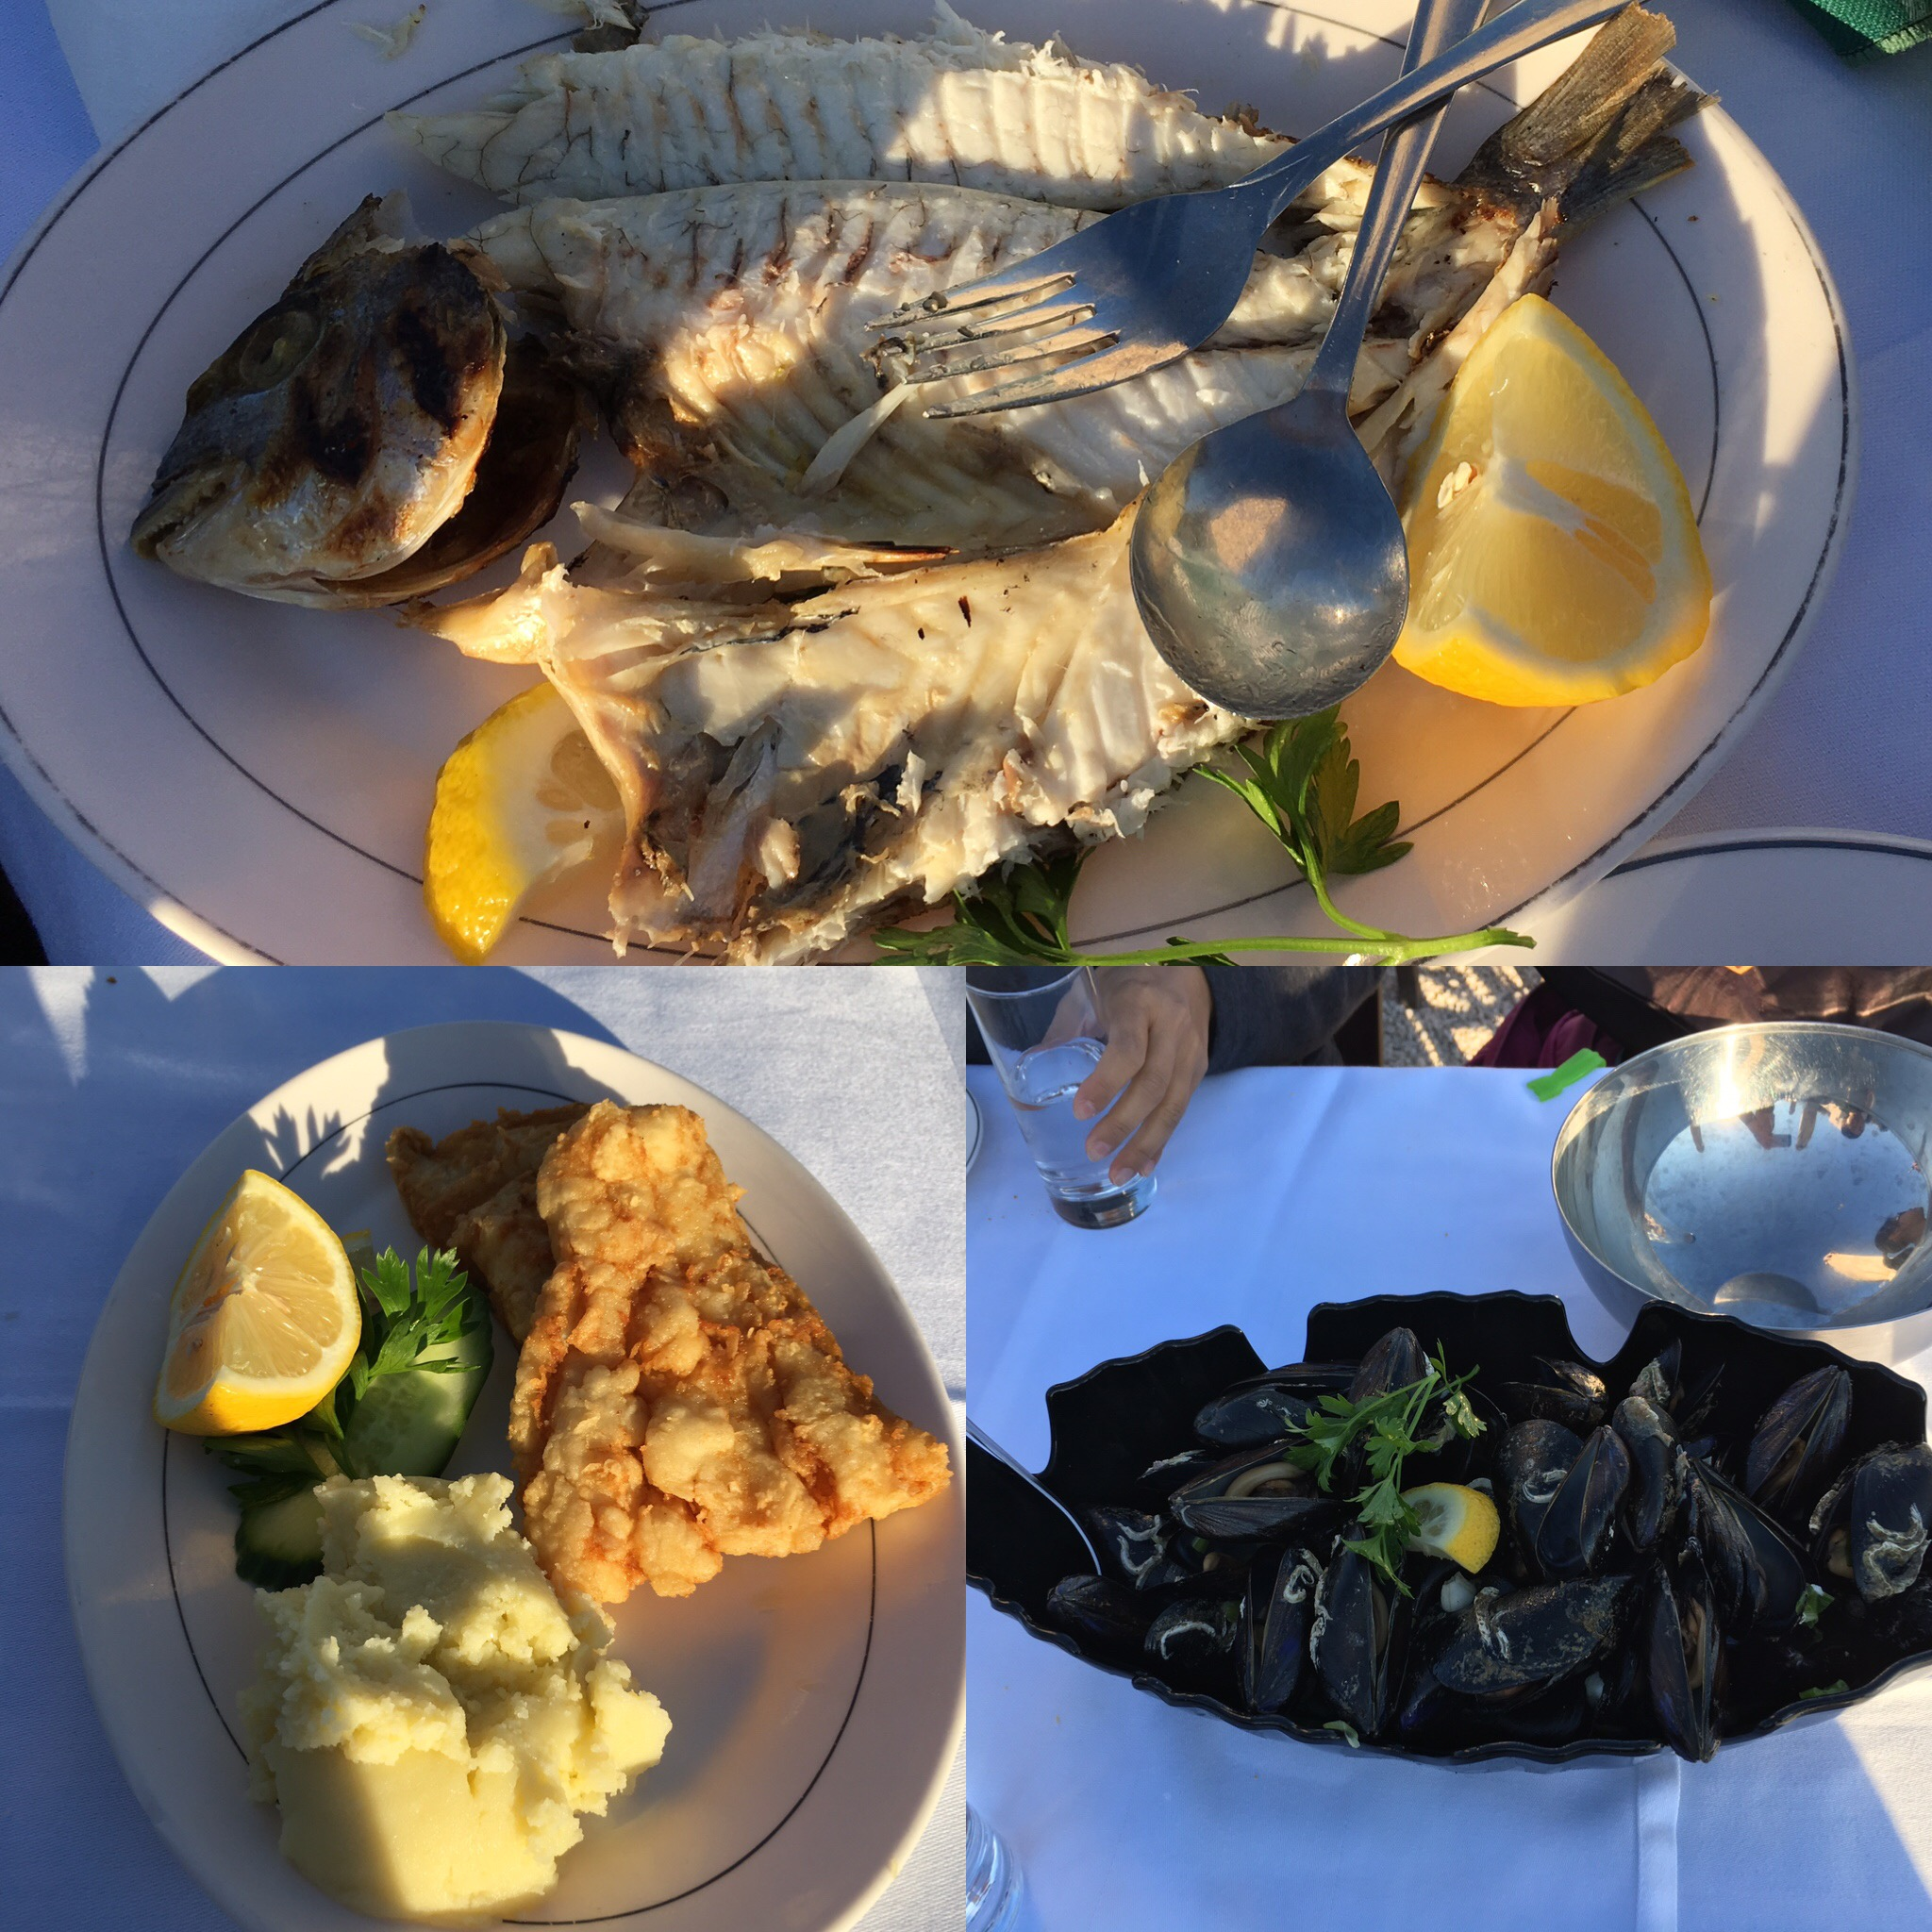 Fresh grilled fish (tasty), fried cod (ehh was too salty and dry for me), and fresh mussels (meaty and good)